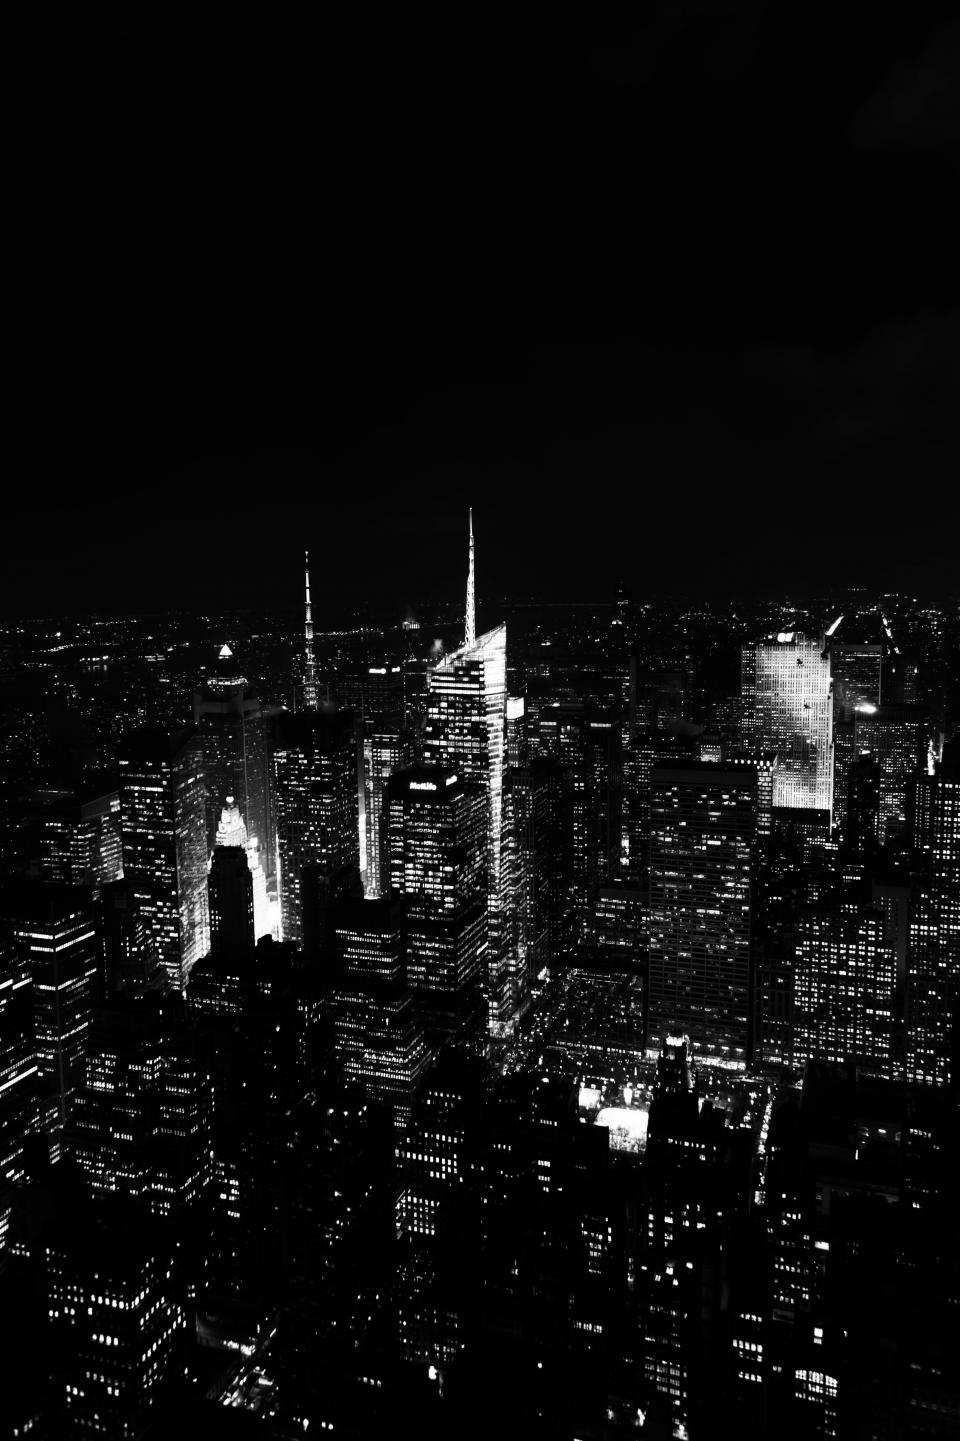 night dark buildings architecture aerial view rooftops New York NYC city urban black and white towers high rises skyscrapers